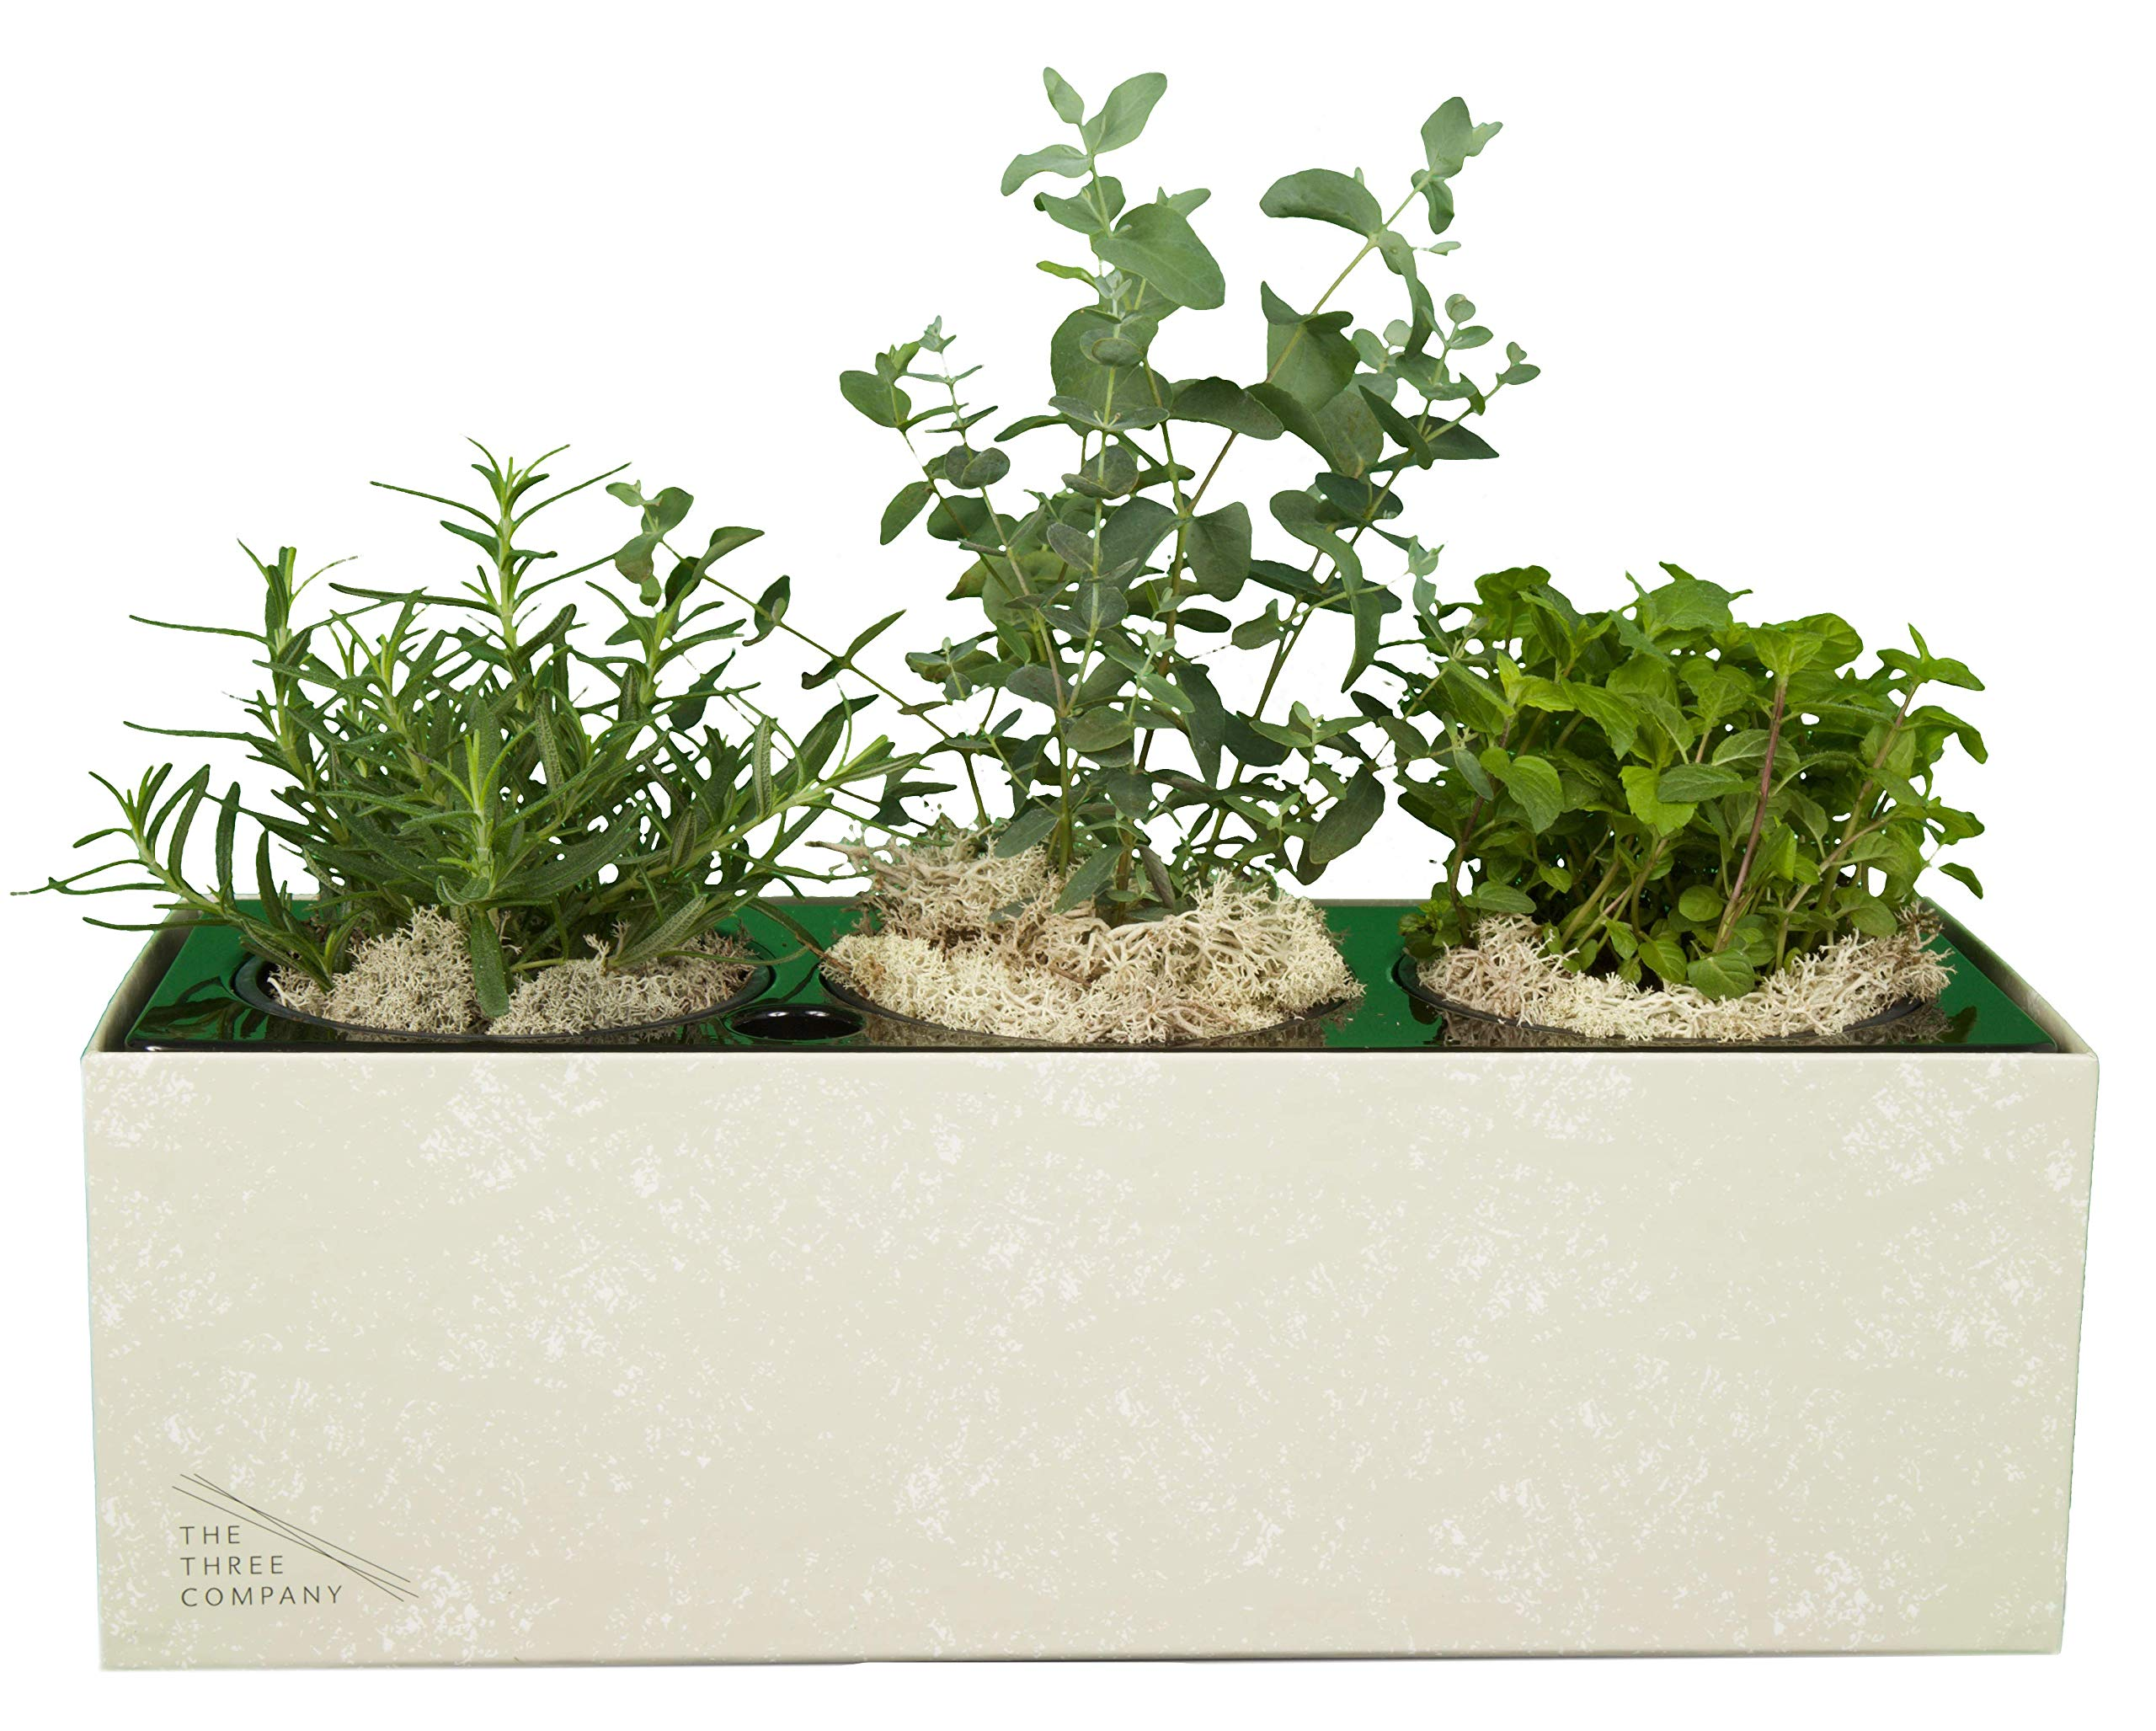 The Three Company Air Purifying Live Herb Combo in in Self Watering Planter ((Eucalyptus, Mint, Chamomile), Easy Care, Display